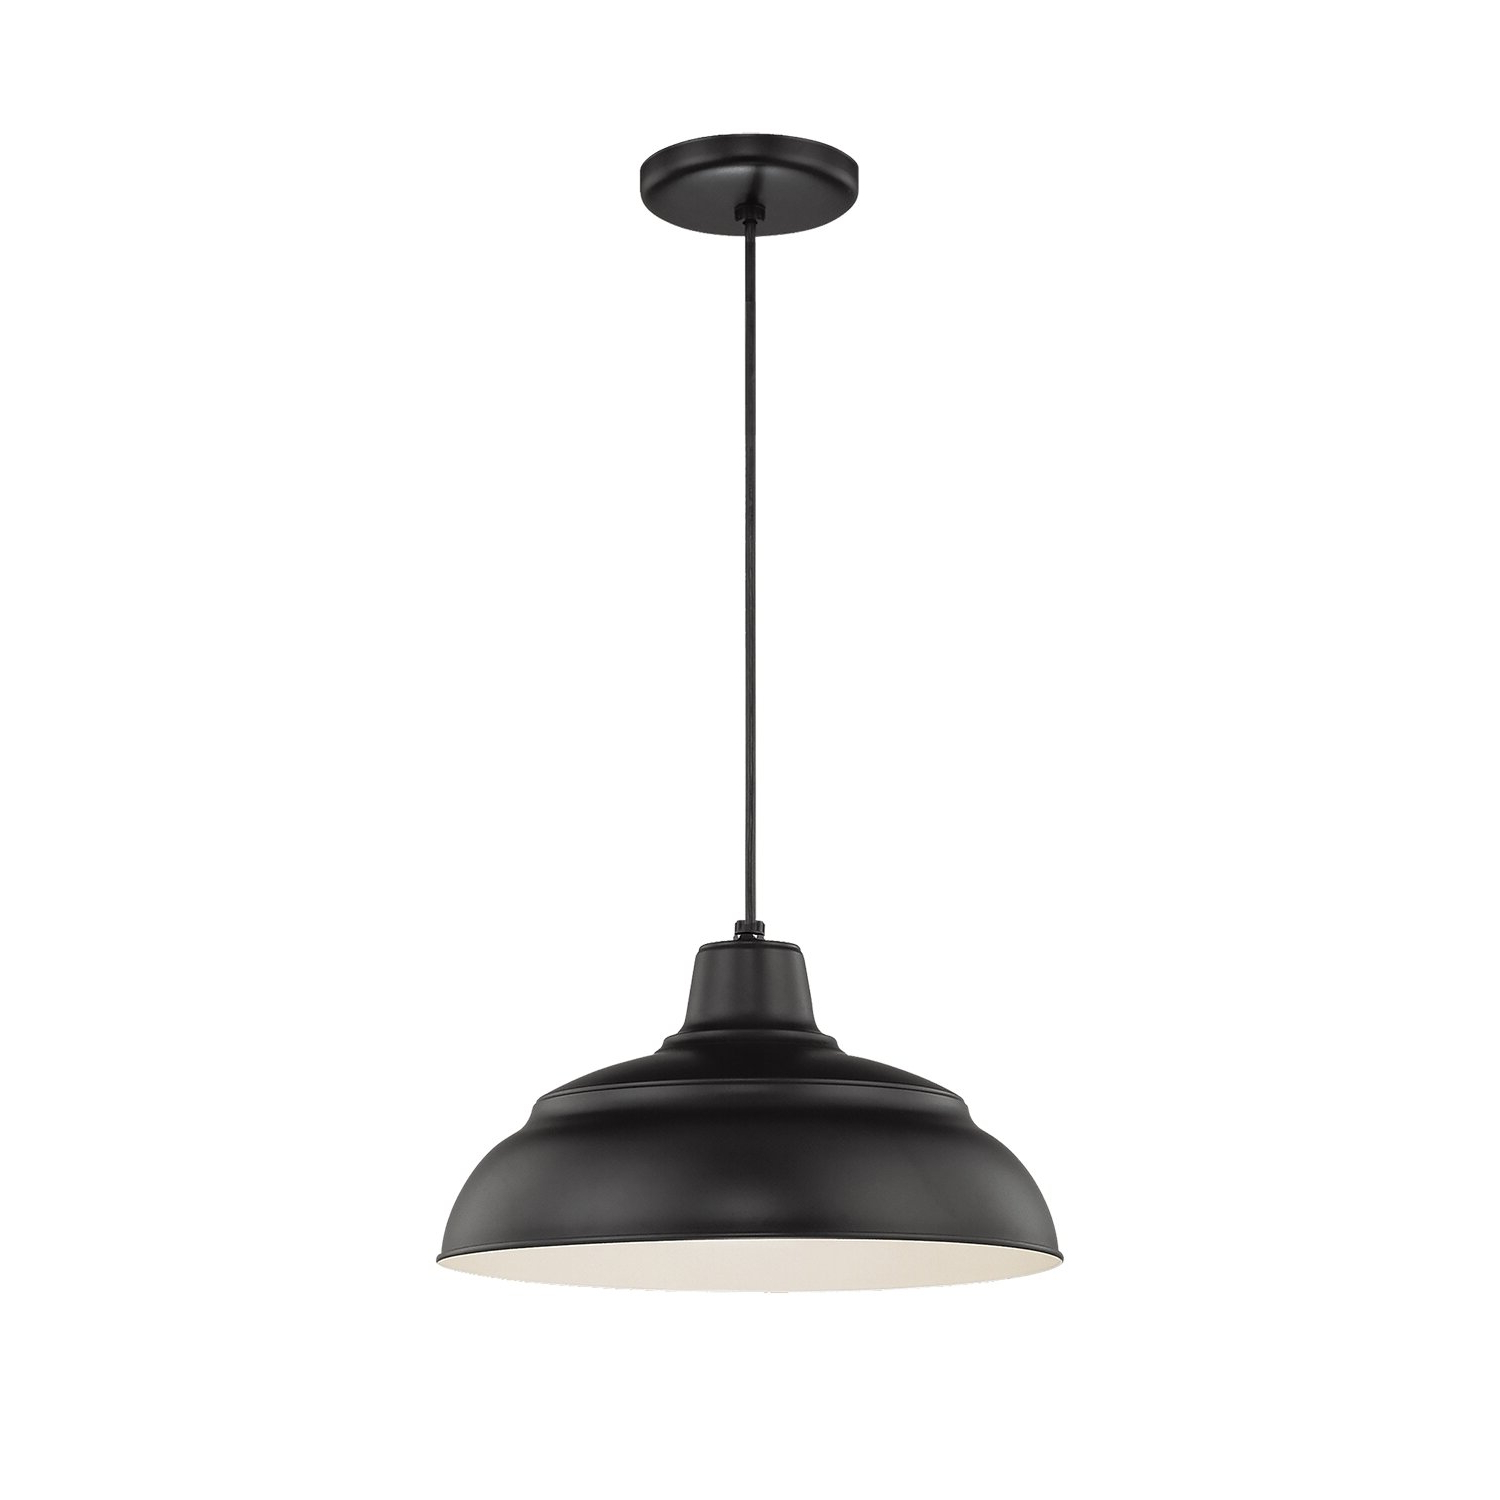 Stetson 1 Light Bowl Pendant Regarding Widely Used Conover 1 Light Dome Pendants (View 17 of 20)